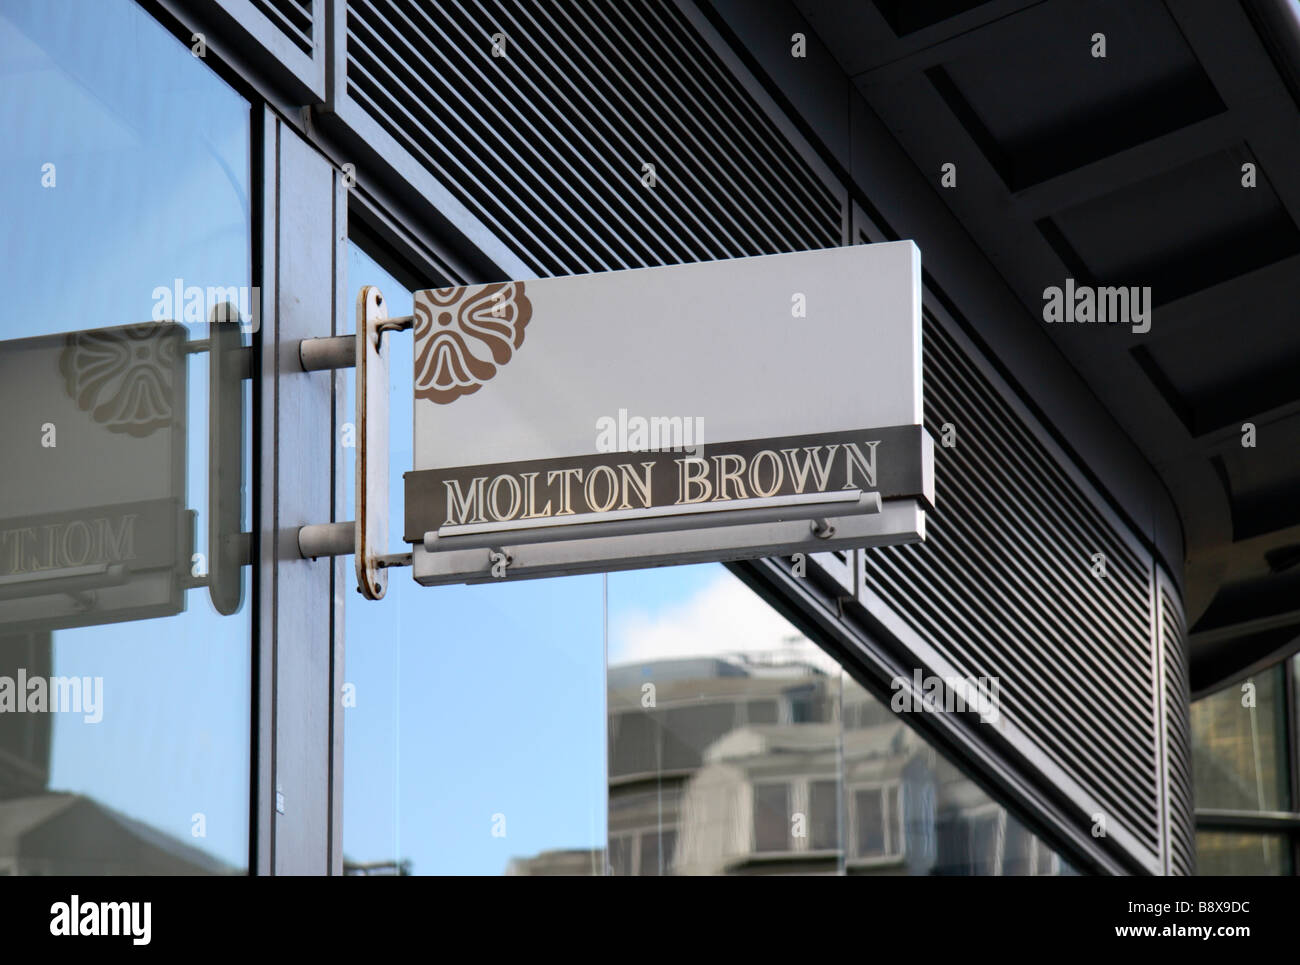 A sign above the Molton Brown beauty products store in Victoria, London. Mar 2009 - Stock Image